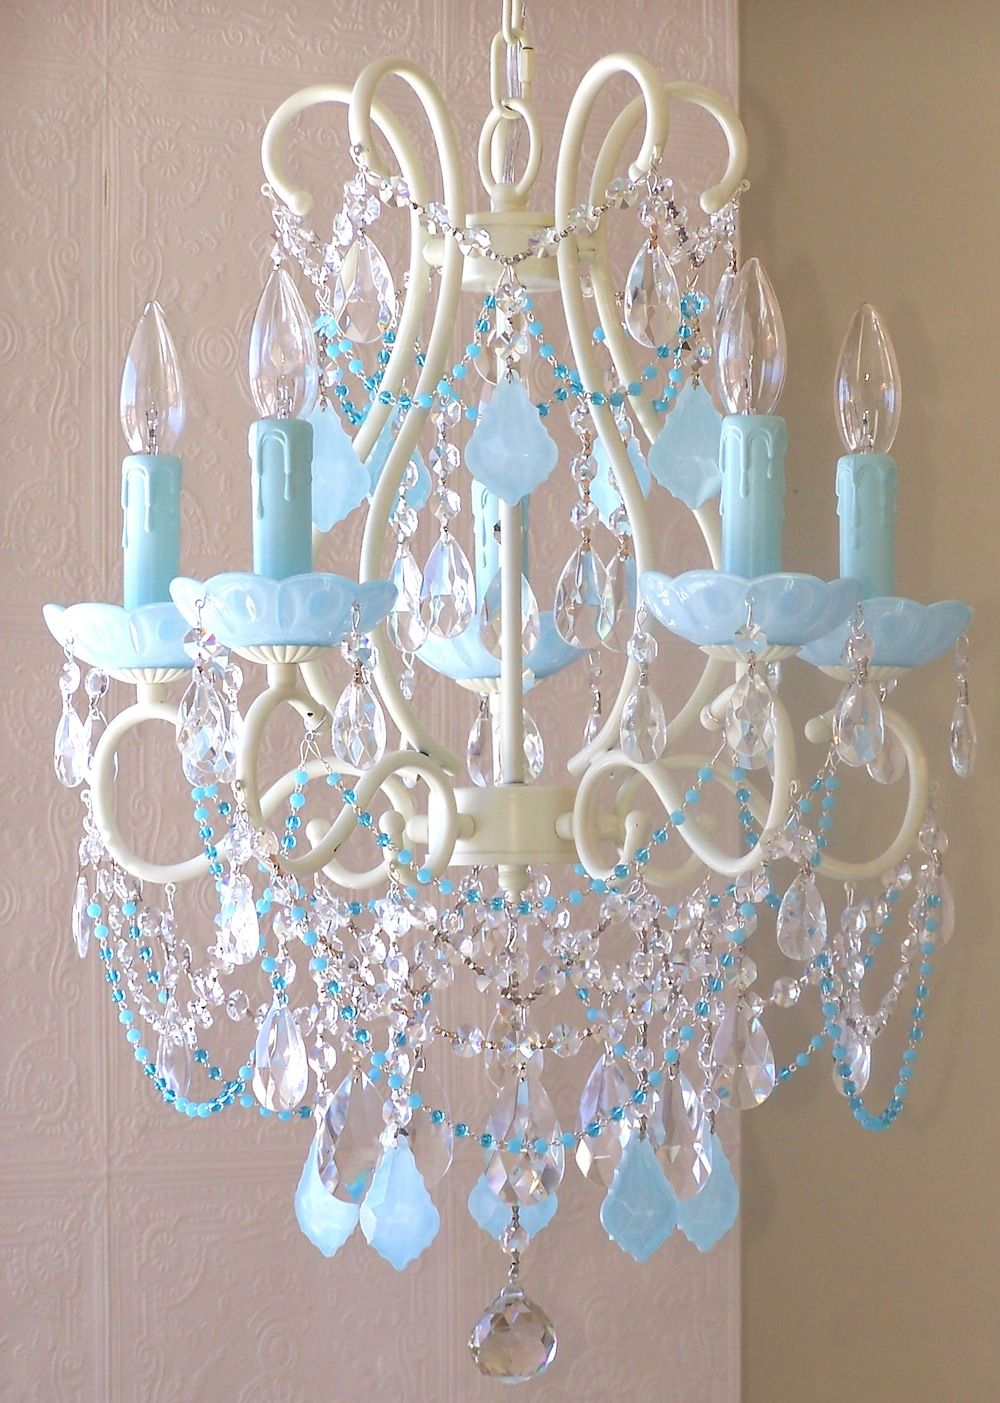 5 light beaded chandelier with opal aqua blue crystals i 5 light beaded chandelier with opal aqua blue crystals i absolutely adore this aloadofball Gallery